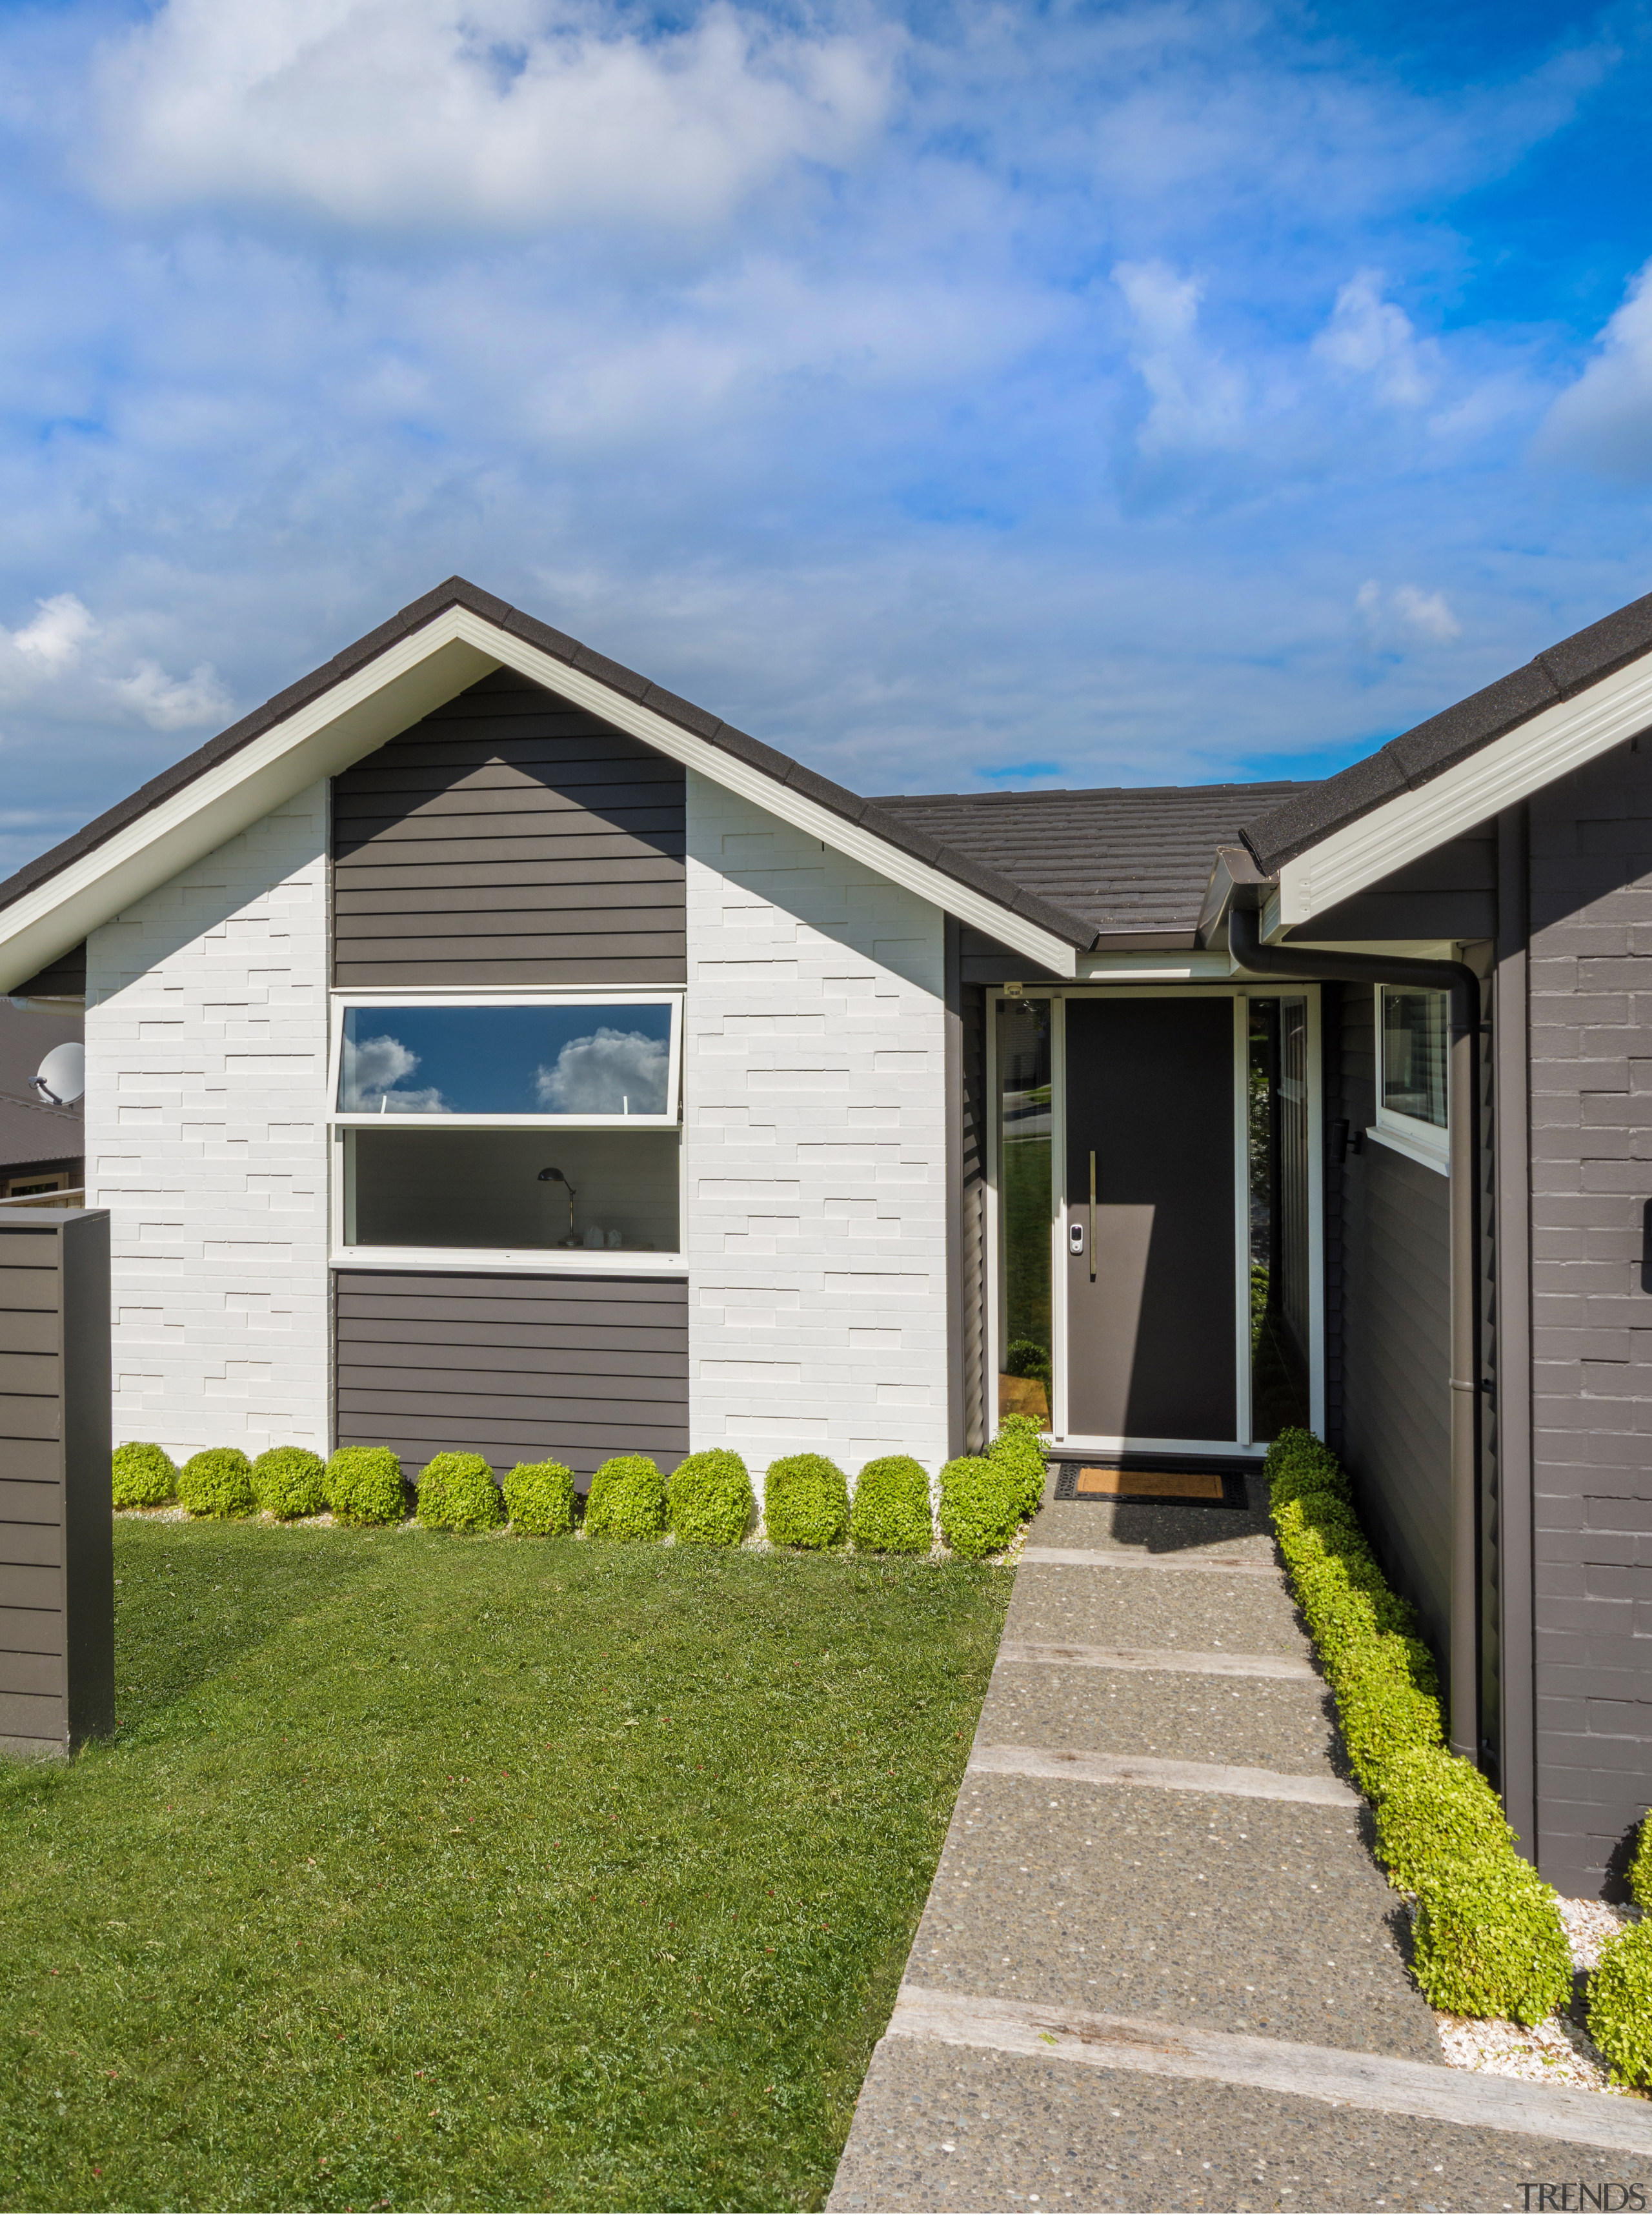 Clad in painted brick and weatherboard, this Landmark cottage, elevation, estate, facade, grass, home, house, property, real estate, residential area, shed, siding, sky, window, yard, teal